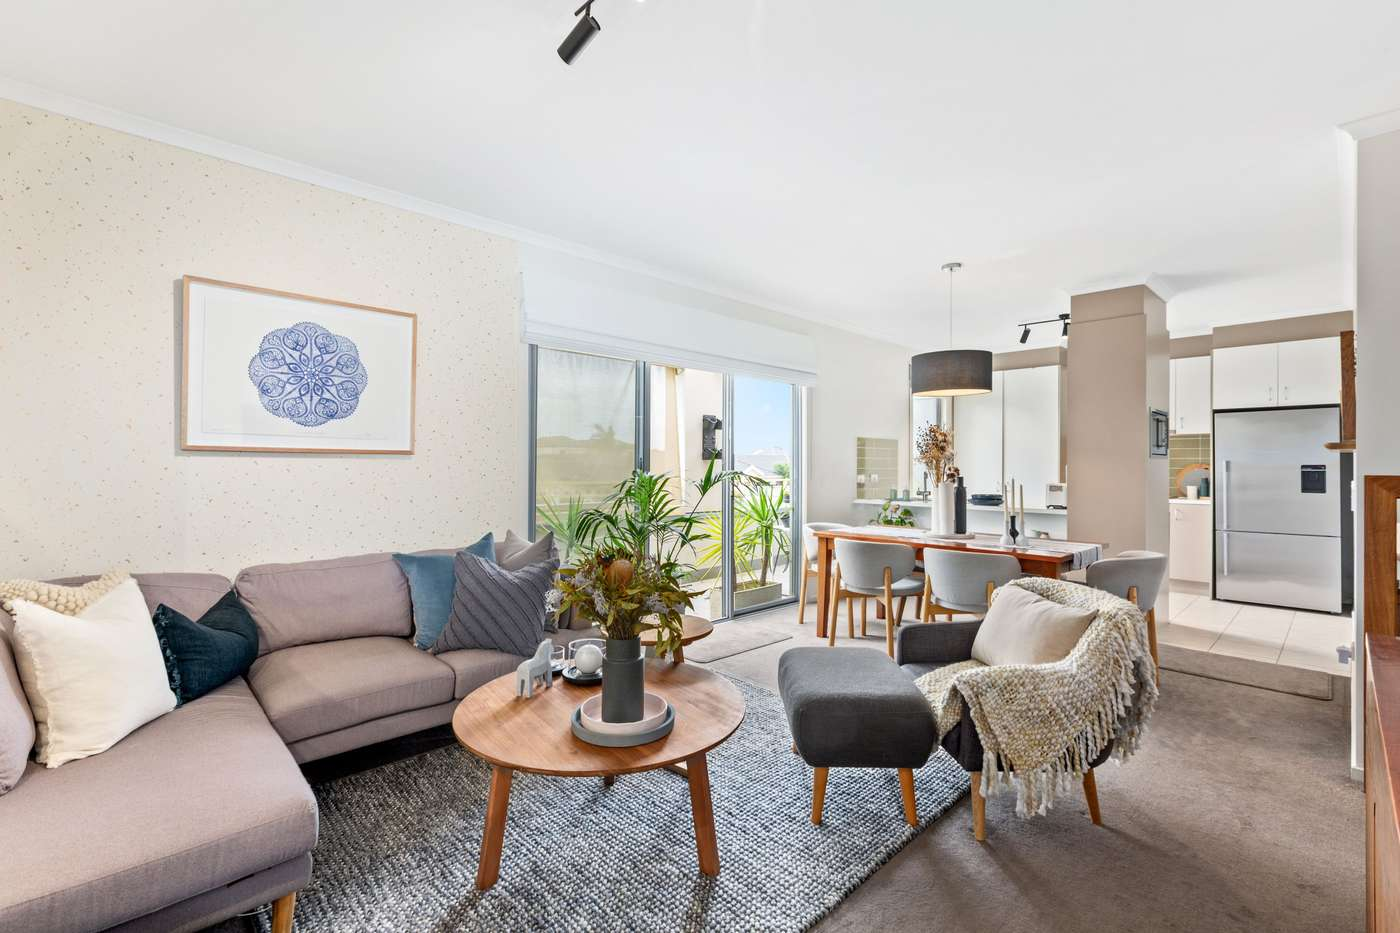 Main view of Homely apartment listing, 6/25 Lats Avenue, Carrum Downs, VIC 3201